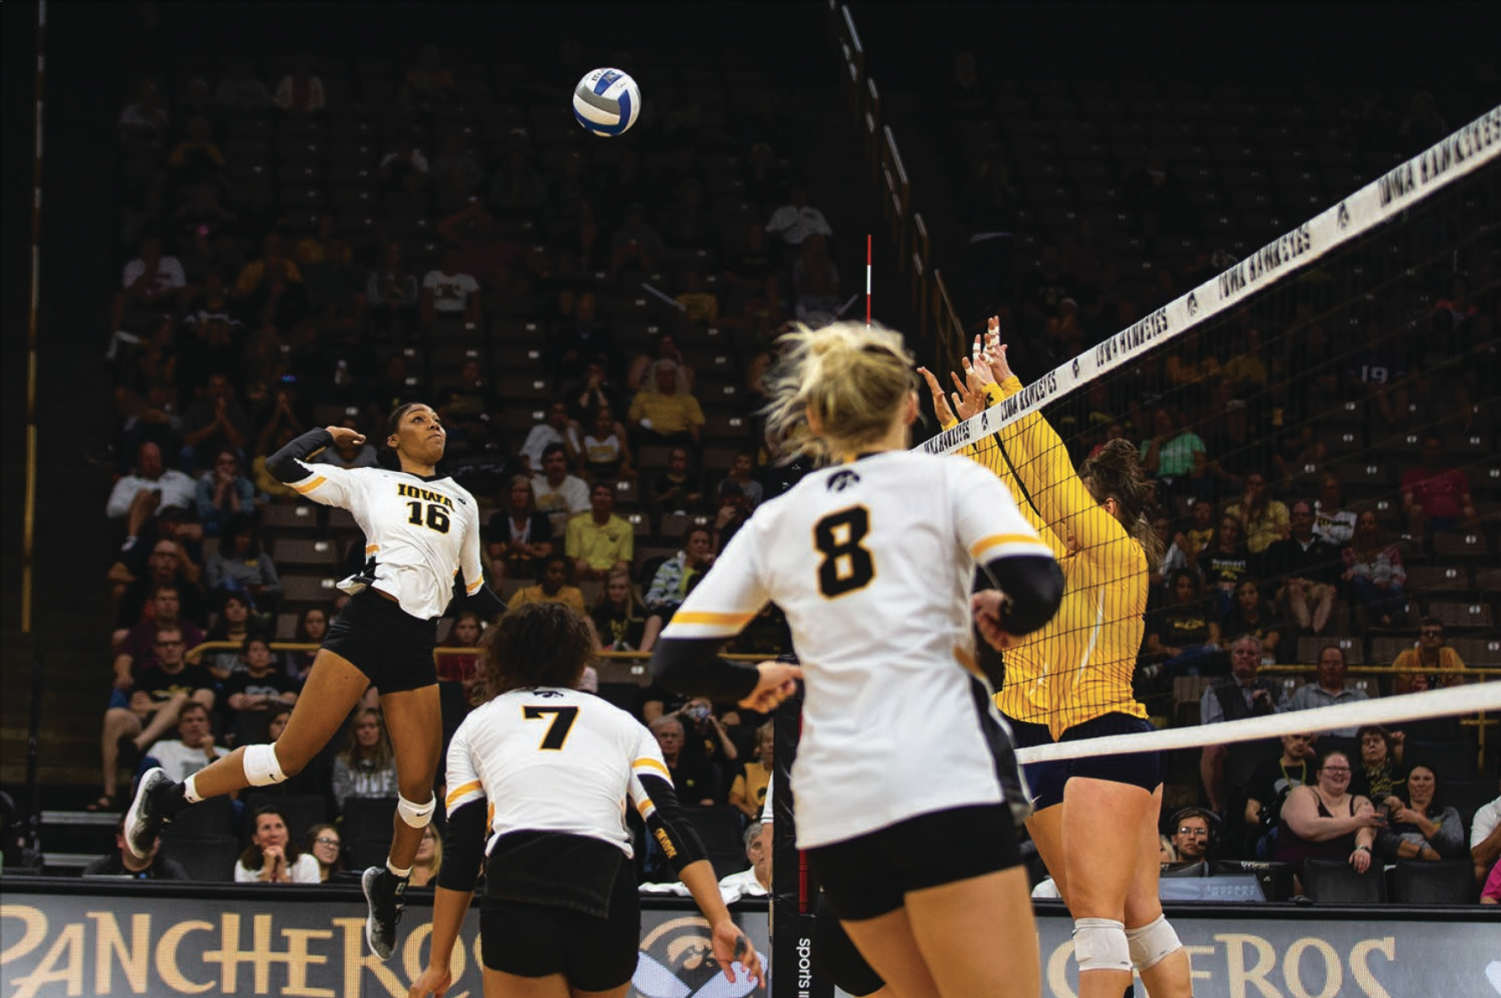 Taylor Louis spikes the ball during Iowa's match against Michigan at Carver-Hawkeye Arena on September 23, 2018. The Hawkeyes were defeated 3-1.